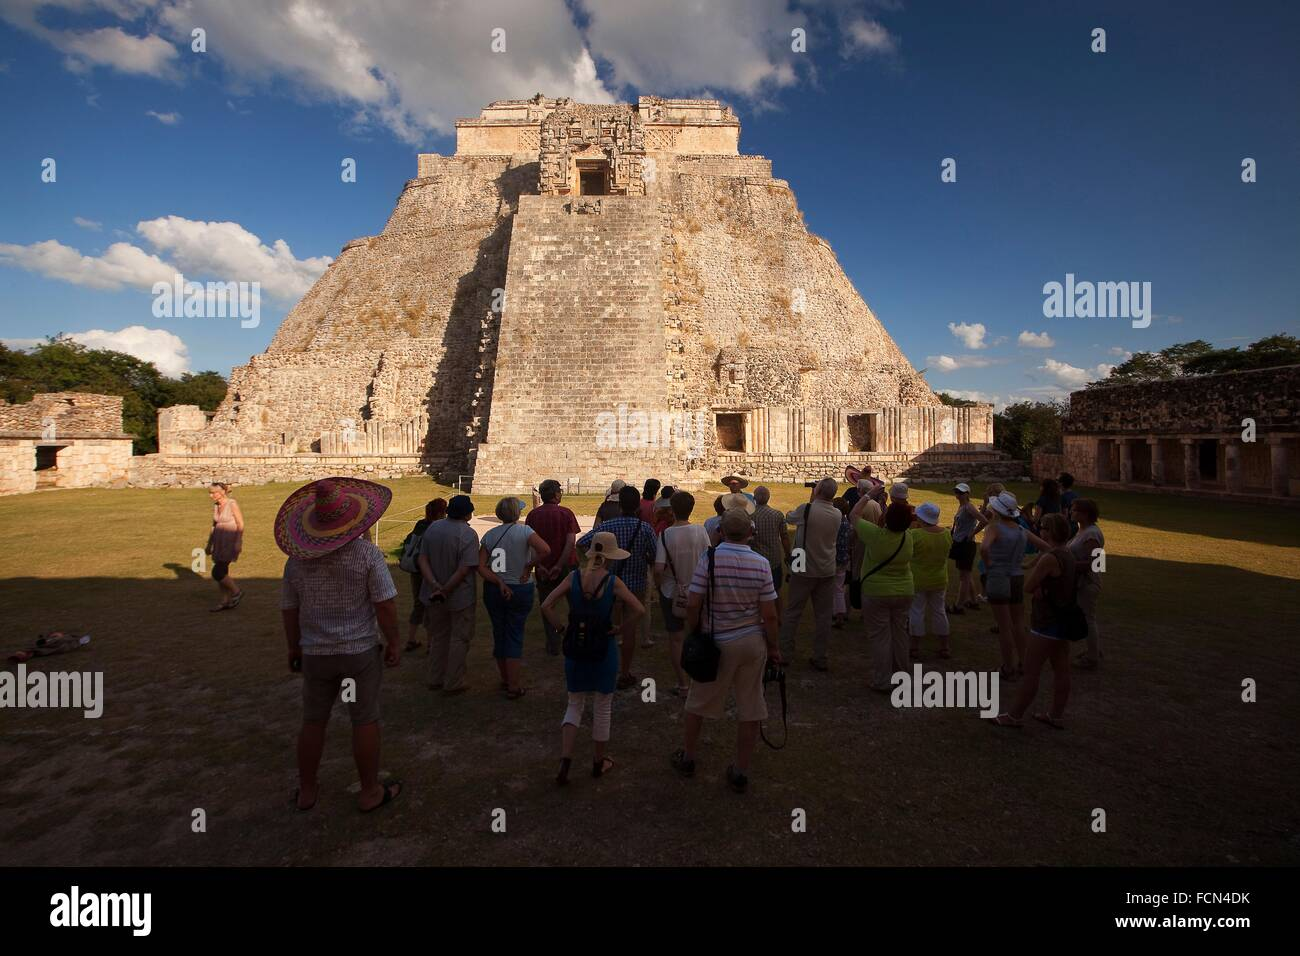 Tourists walking around the Pyramid of the Magician, Maya archeological site Uxmal, Yucatan, Mexico, Central America. - Stock Image